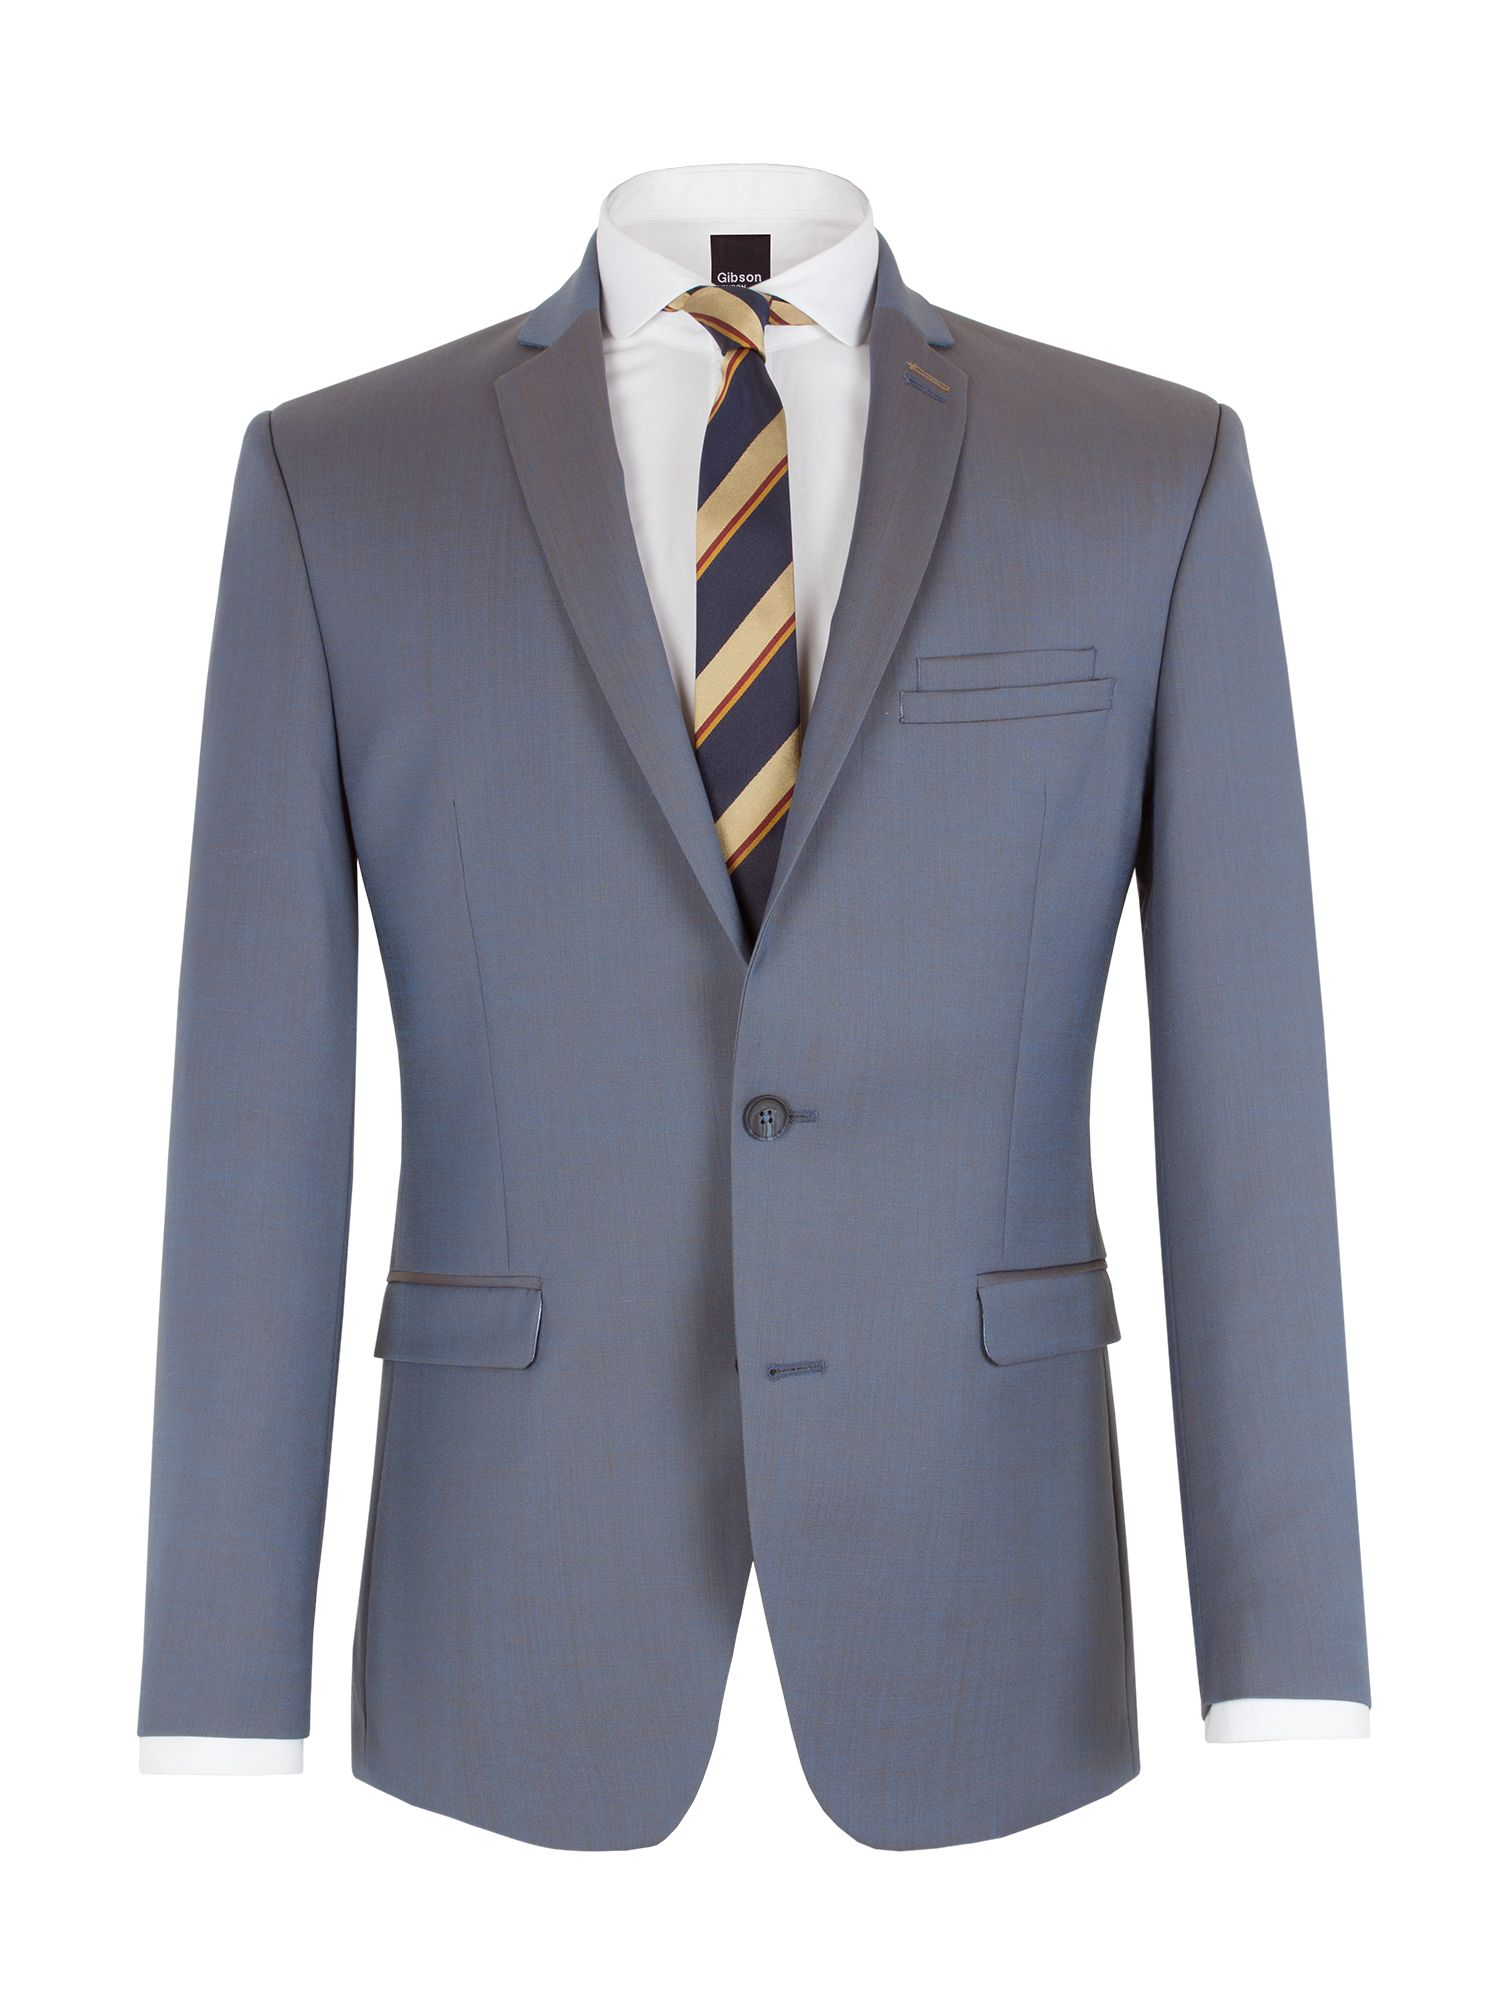 Two tone notch lapel suit